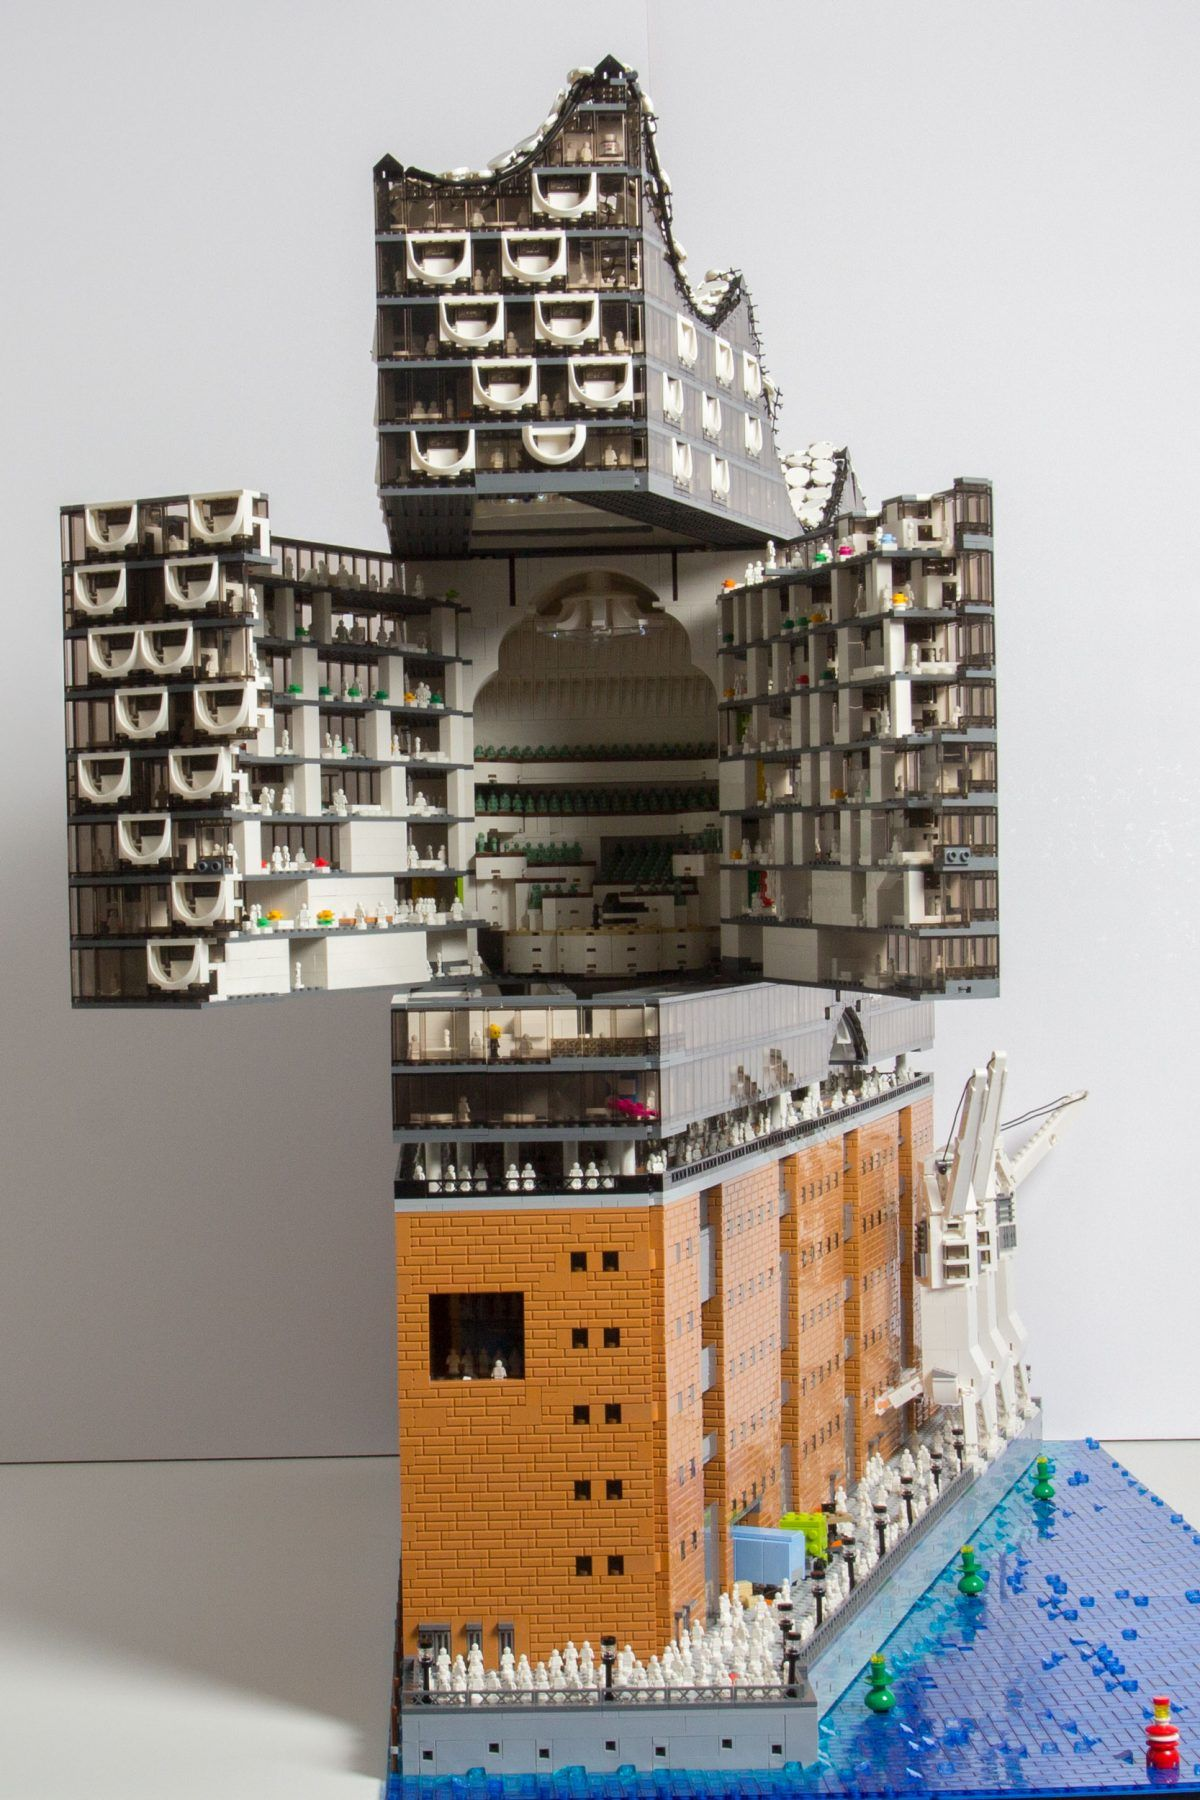 The New Hamburg Concert Hall Elbphilharmonie From Lego It Can Open Up In The Front To Reveal A Very Detailed View Lego Replica Lego Elbphilharmonie Hamburg